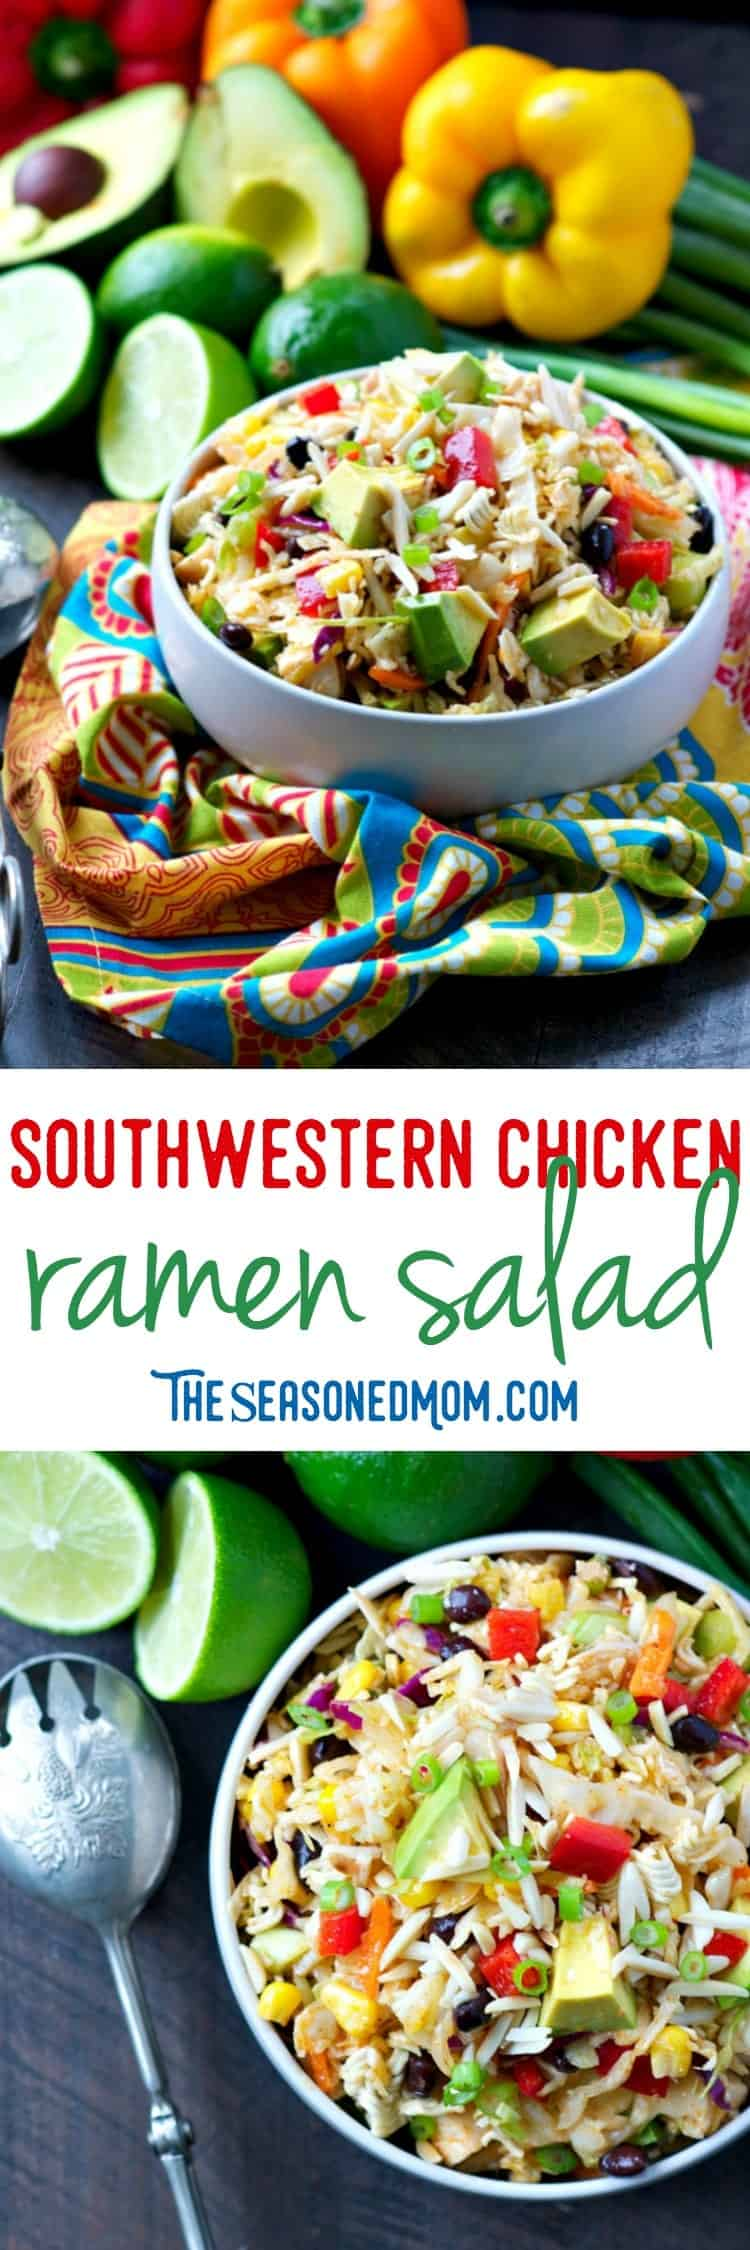 This light, healthy, and fresh Southwestern Chicken Ramen Salad is an easy side dish for cookouts or picnics, a simple make-ahead dinner, or an easy lunch to keep on hand. Loaded with veggies and dressed in a homemade Southwestern Lime Vinaigrette, it's a flavorful dish that's full of satisfying tastes and textures!